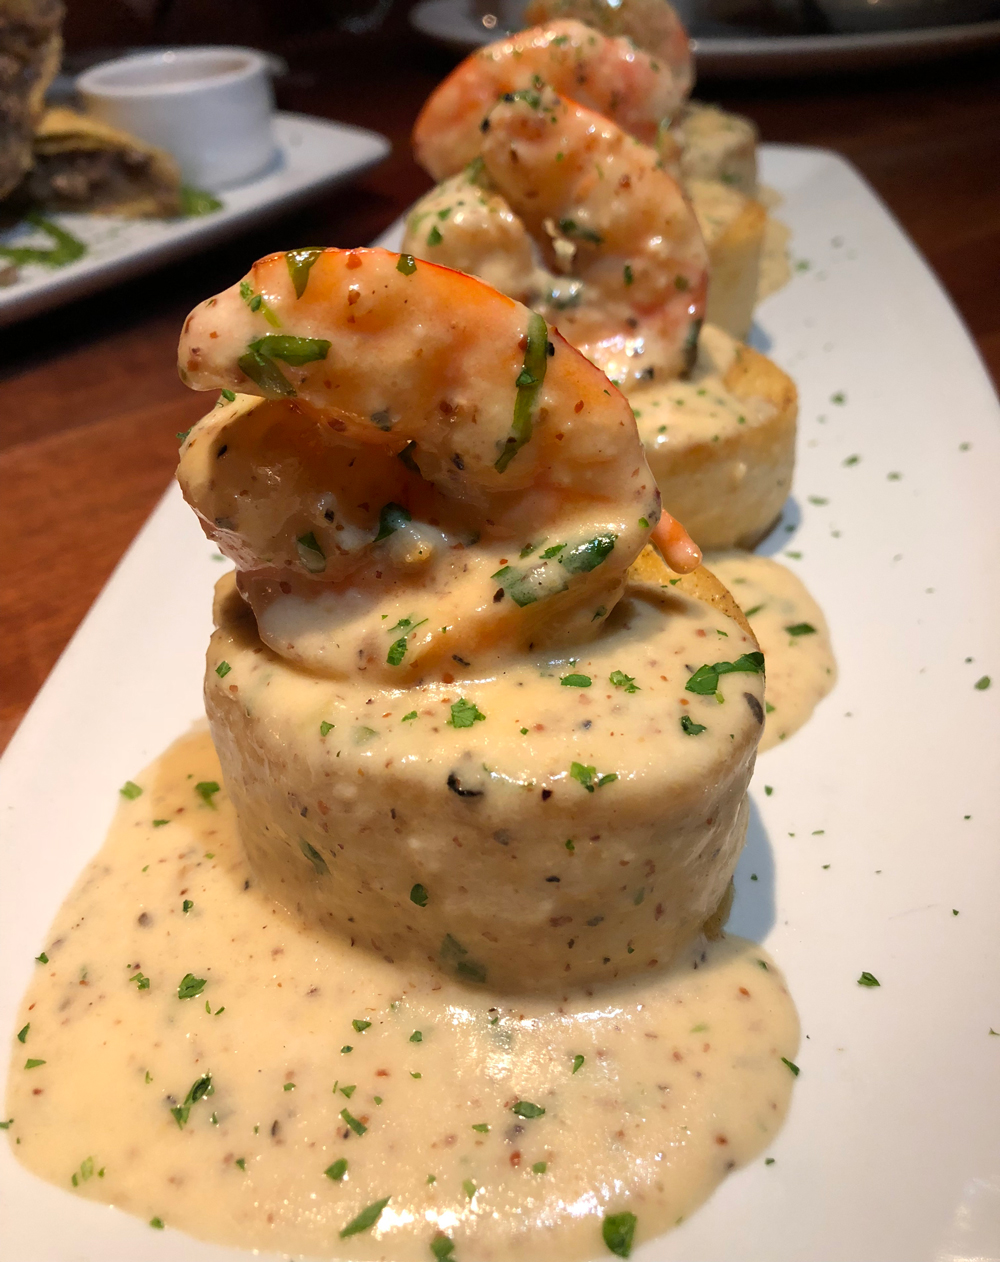 Stoney River Shrimp on Country Toast